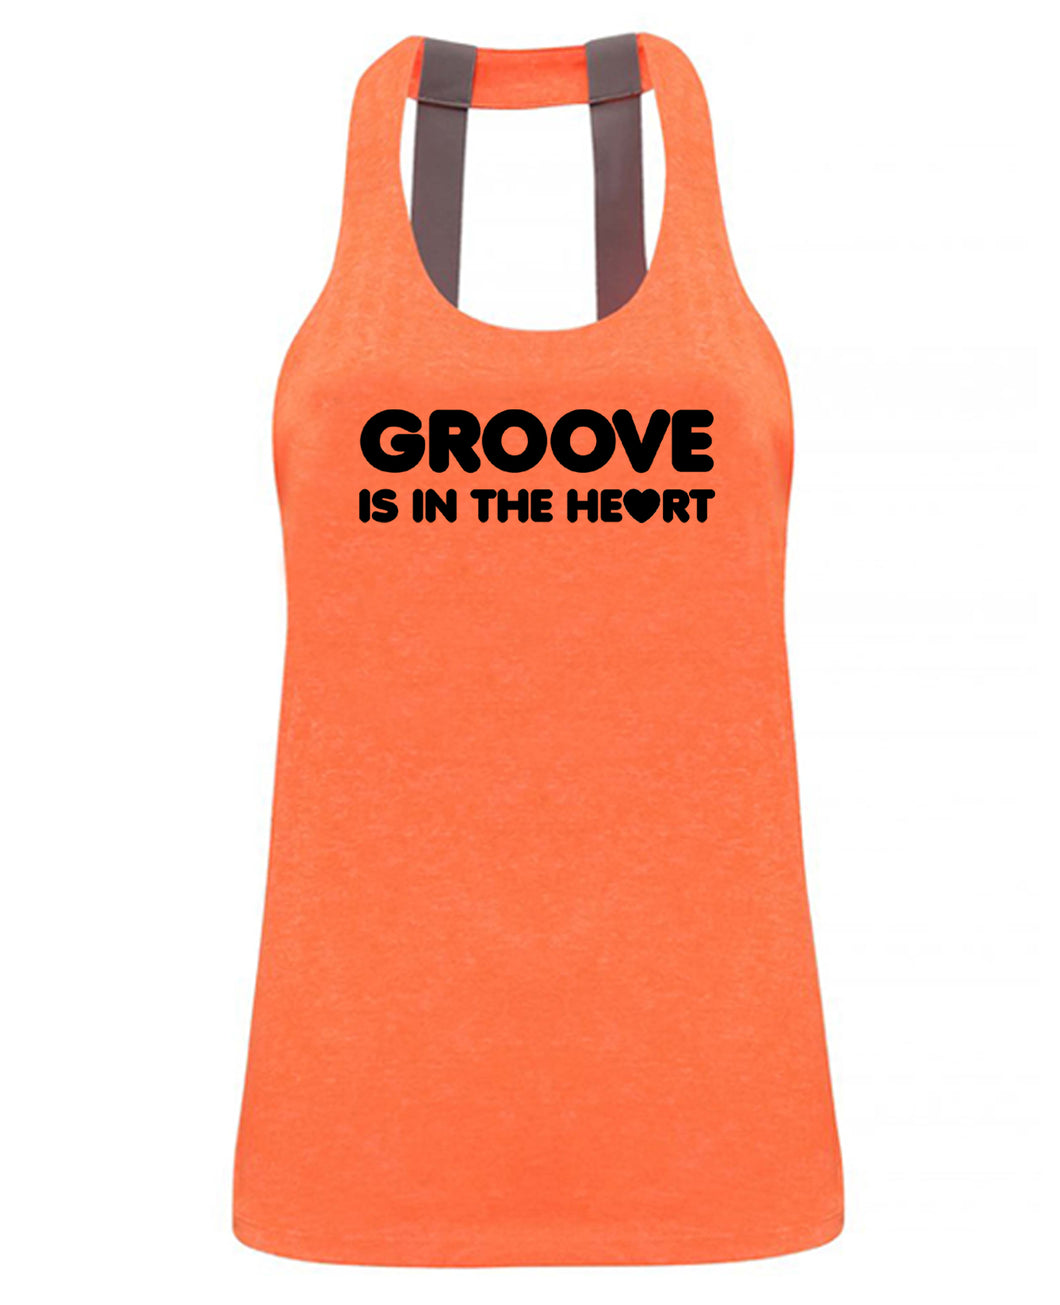 GROOVE IS IN THE HEART - Double strap back - SoreTodayStrongTomorrow